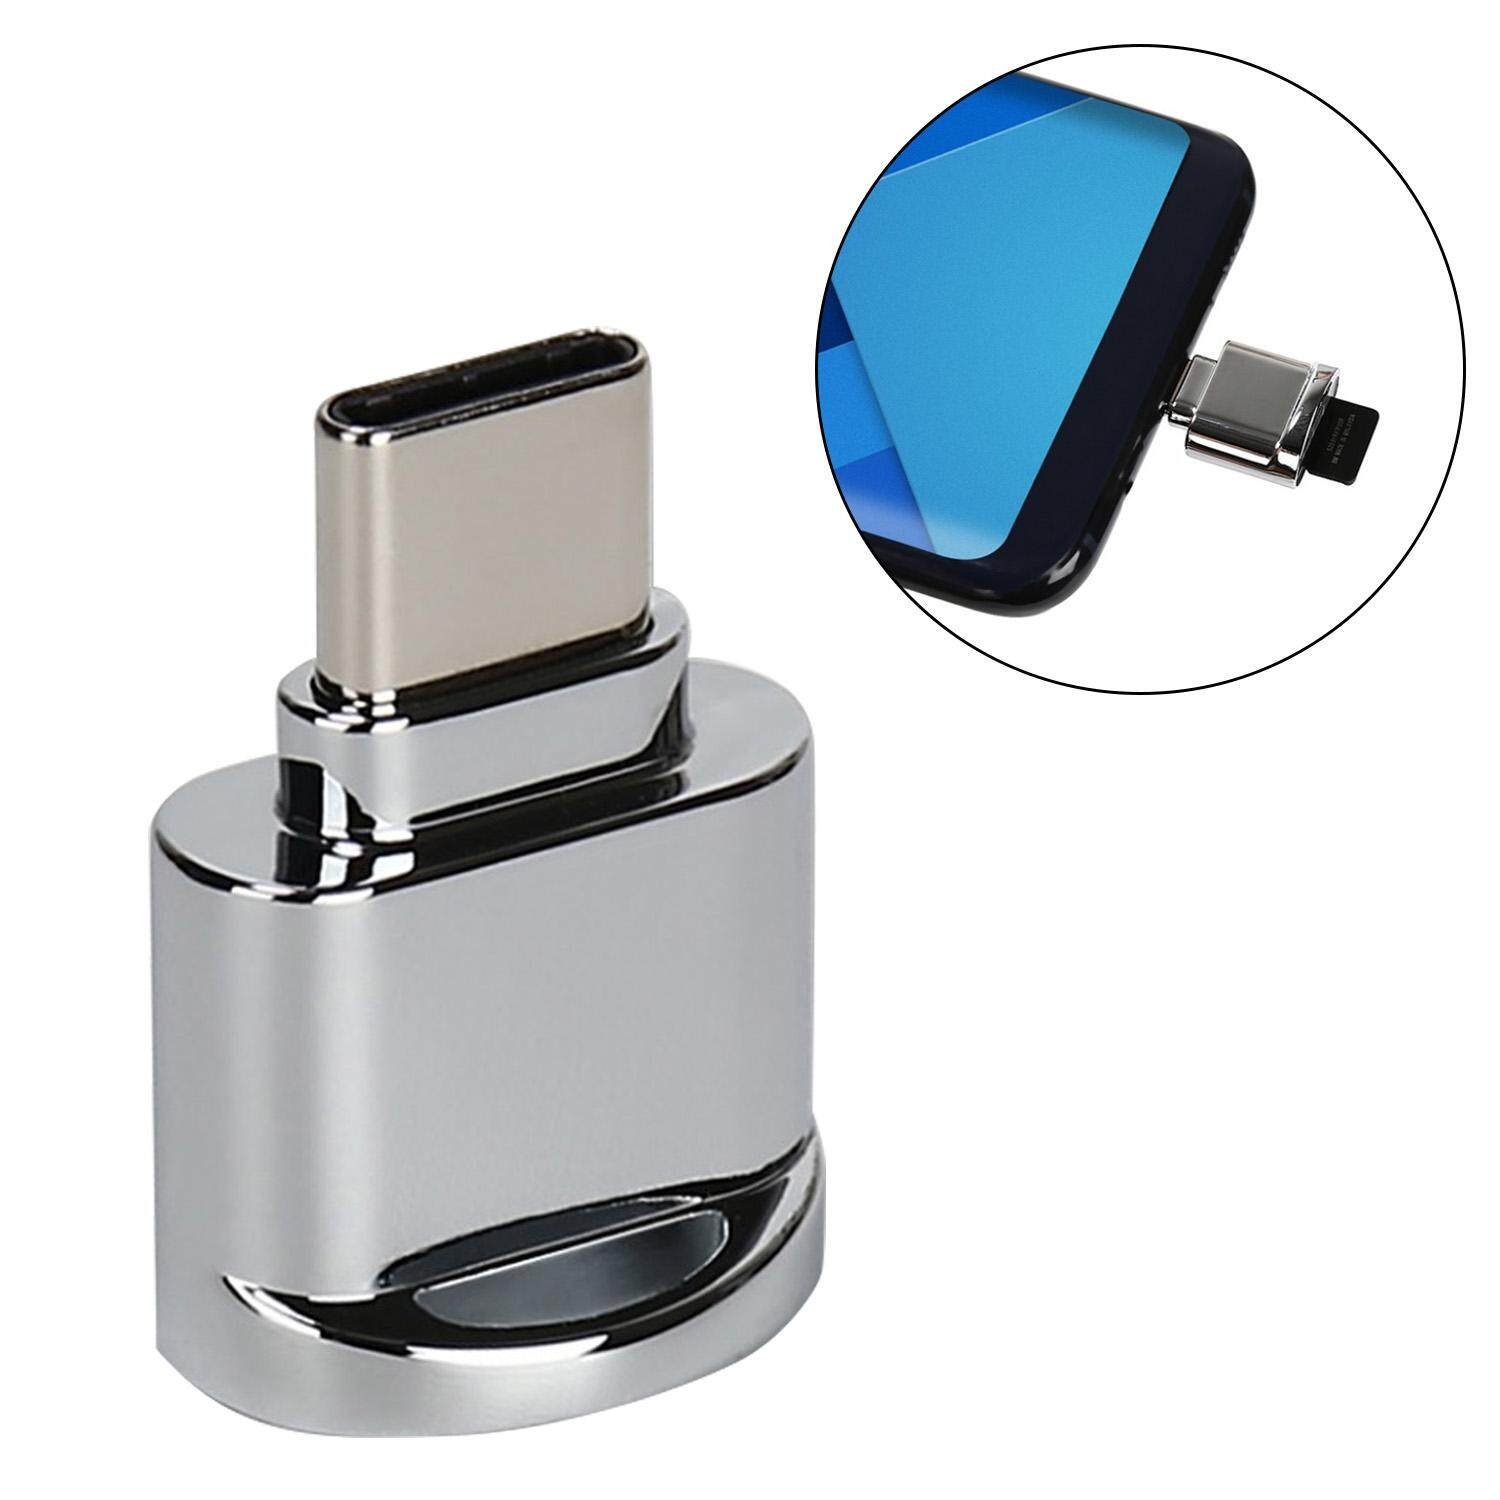 Portable Mini USB 3.1 Type C Micro SD TF Memory Card Reader OTG Adapter with High Speed for Apple MacBook Samsung Galaxy S8 Smart Phone Tablet